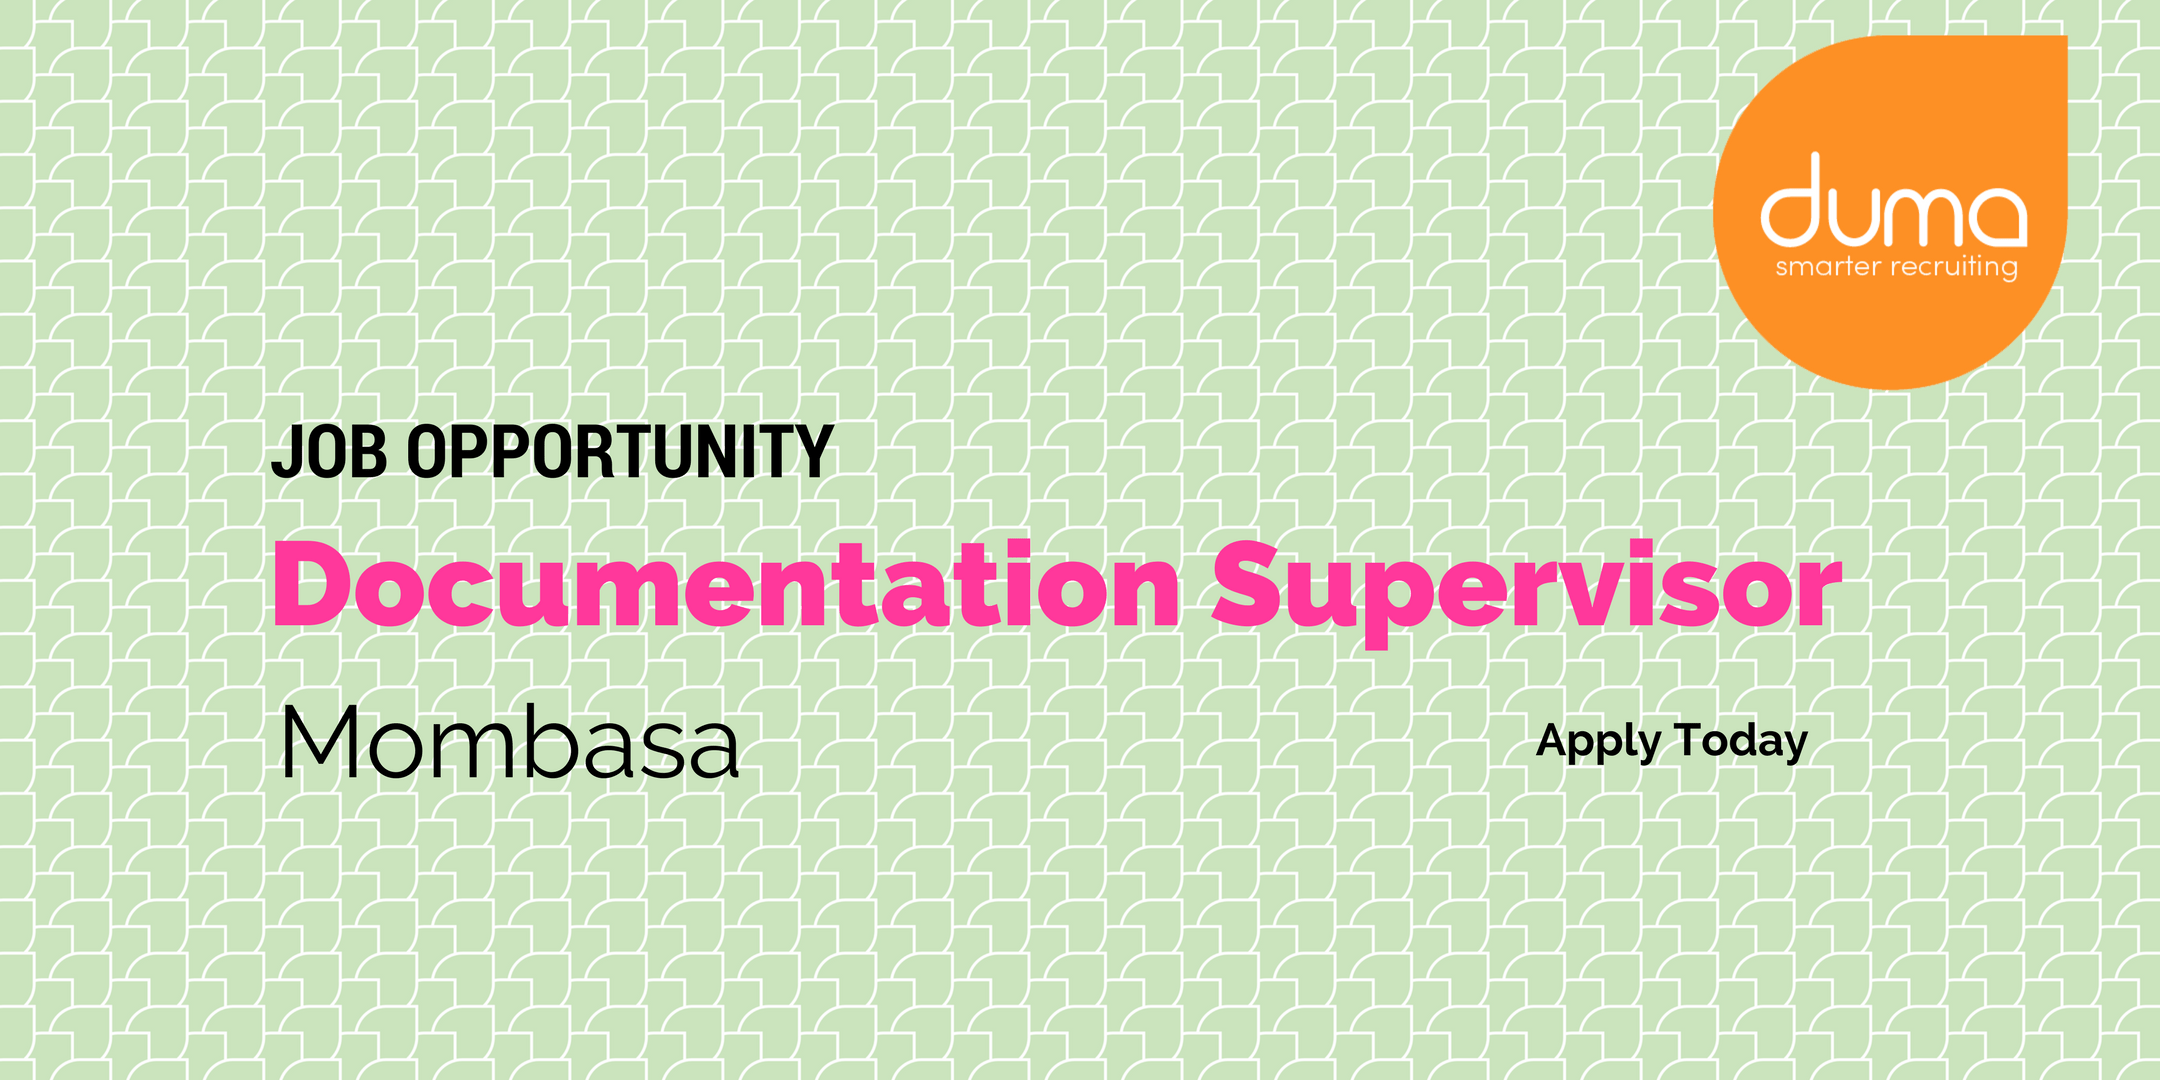 Apply for this Documentation Supervisor today